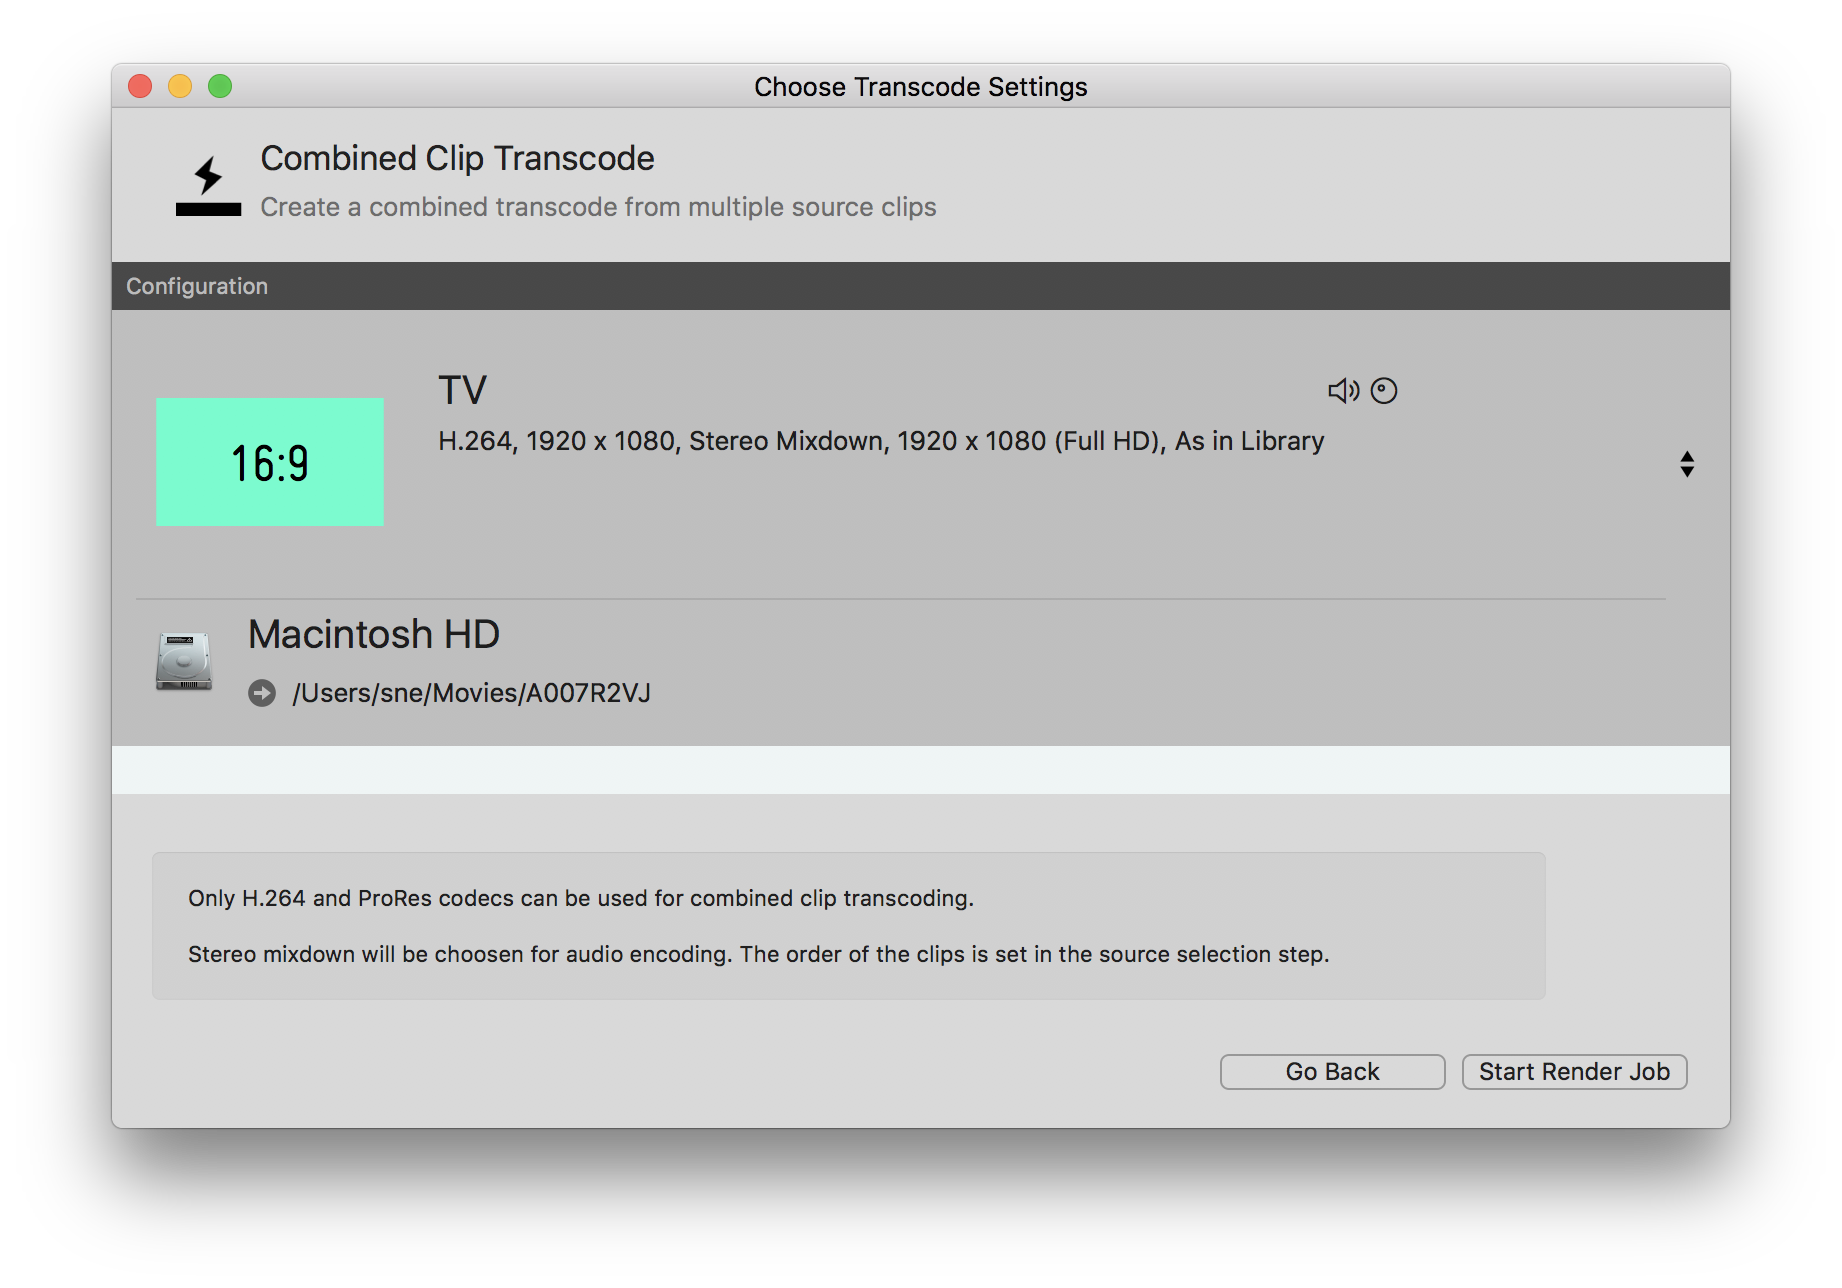 Fig.3: Choose the transcode settings for the combined clip